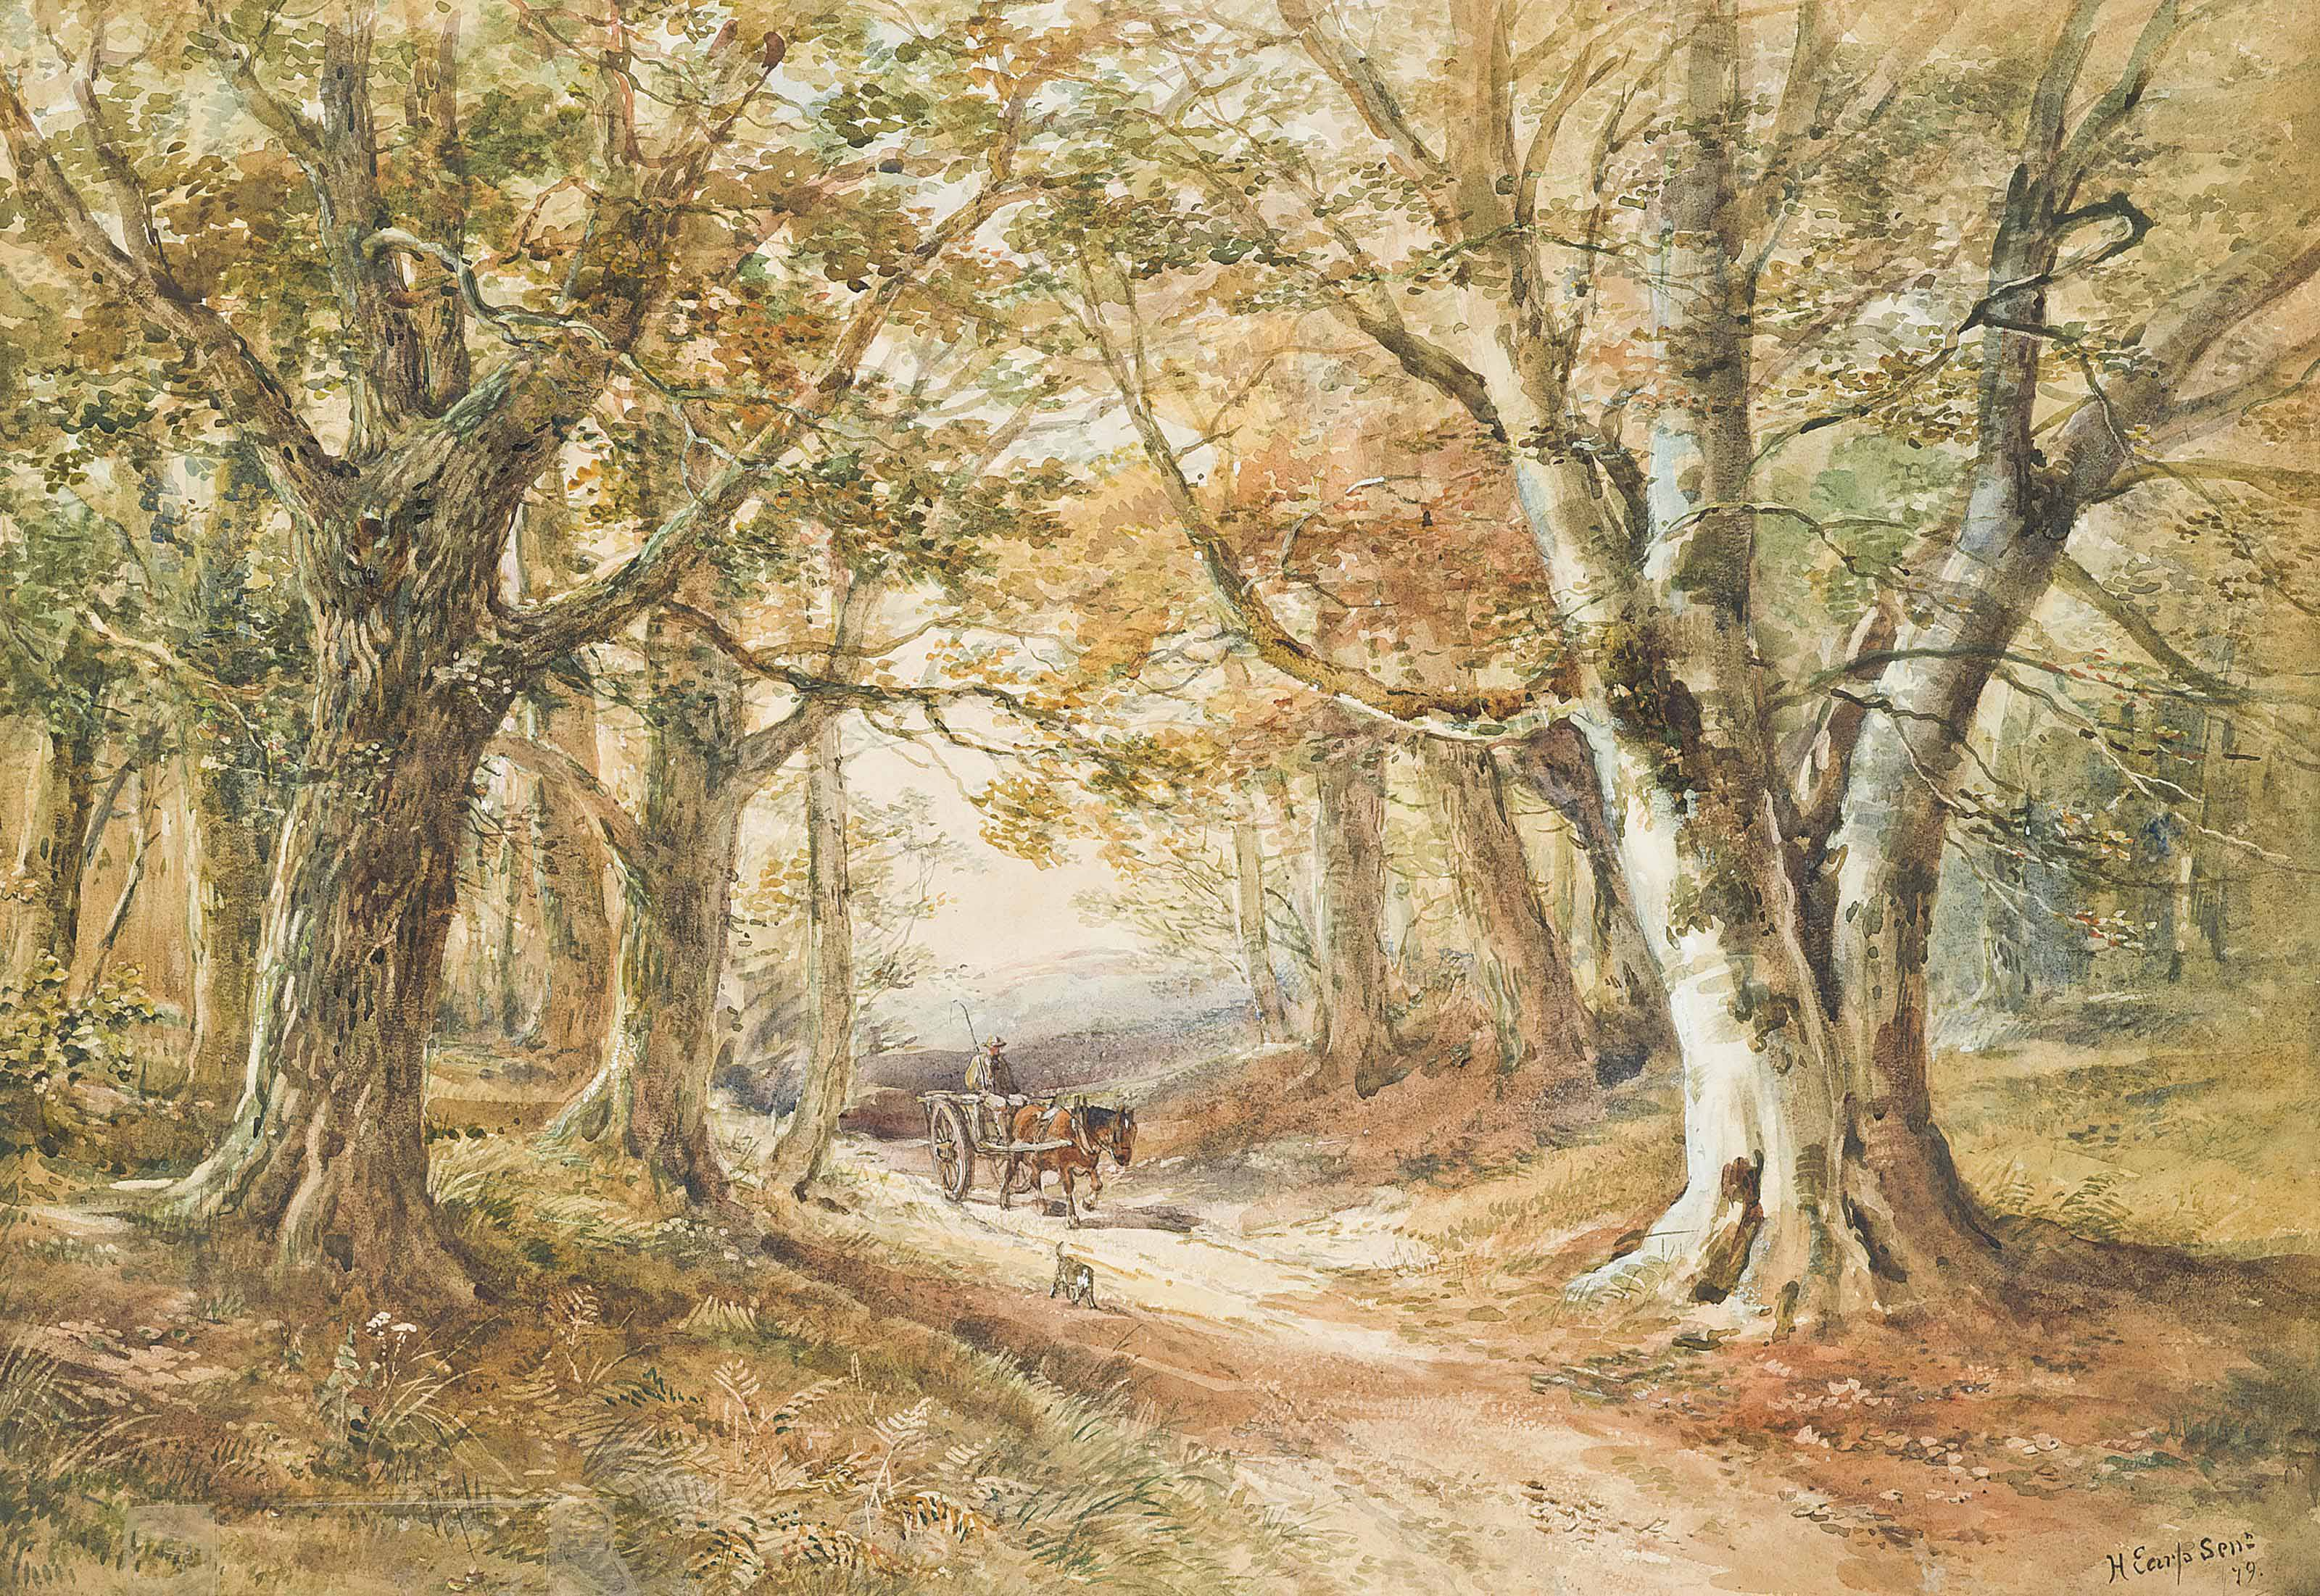 Horses and wagons on a country path; and A wooded landscape with rustics on a horse-drawn cart (one illustrated)